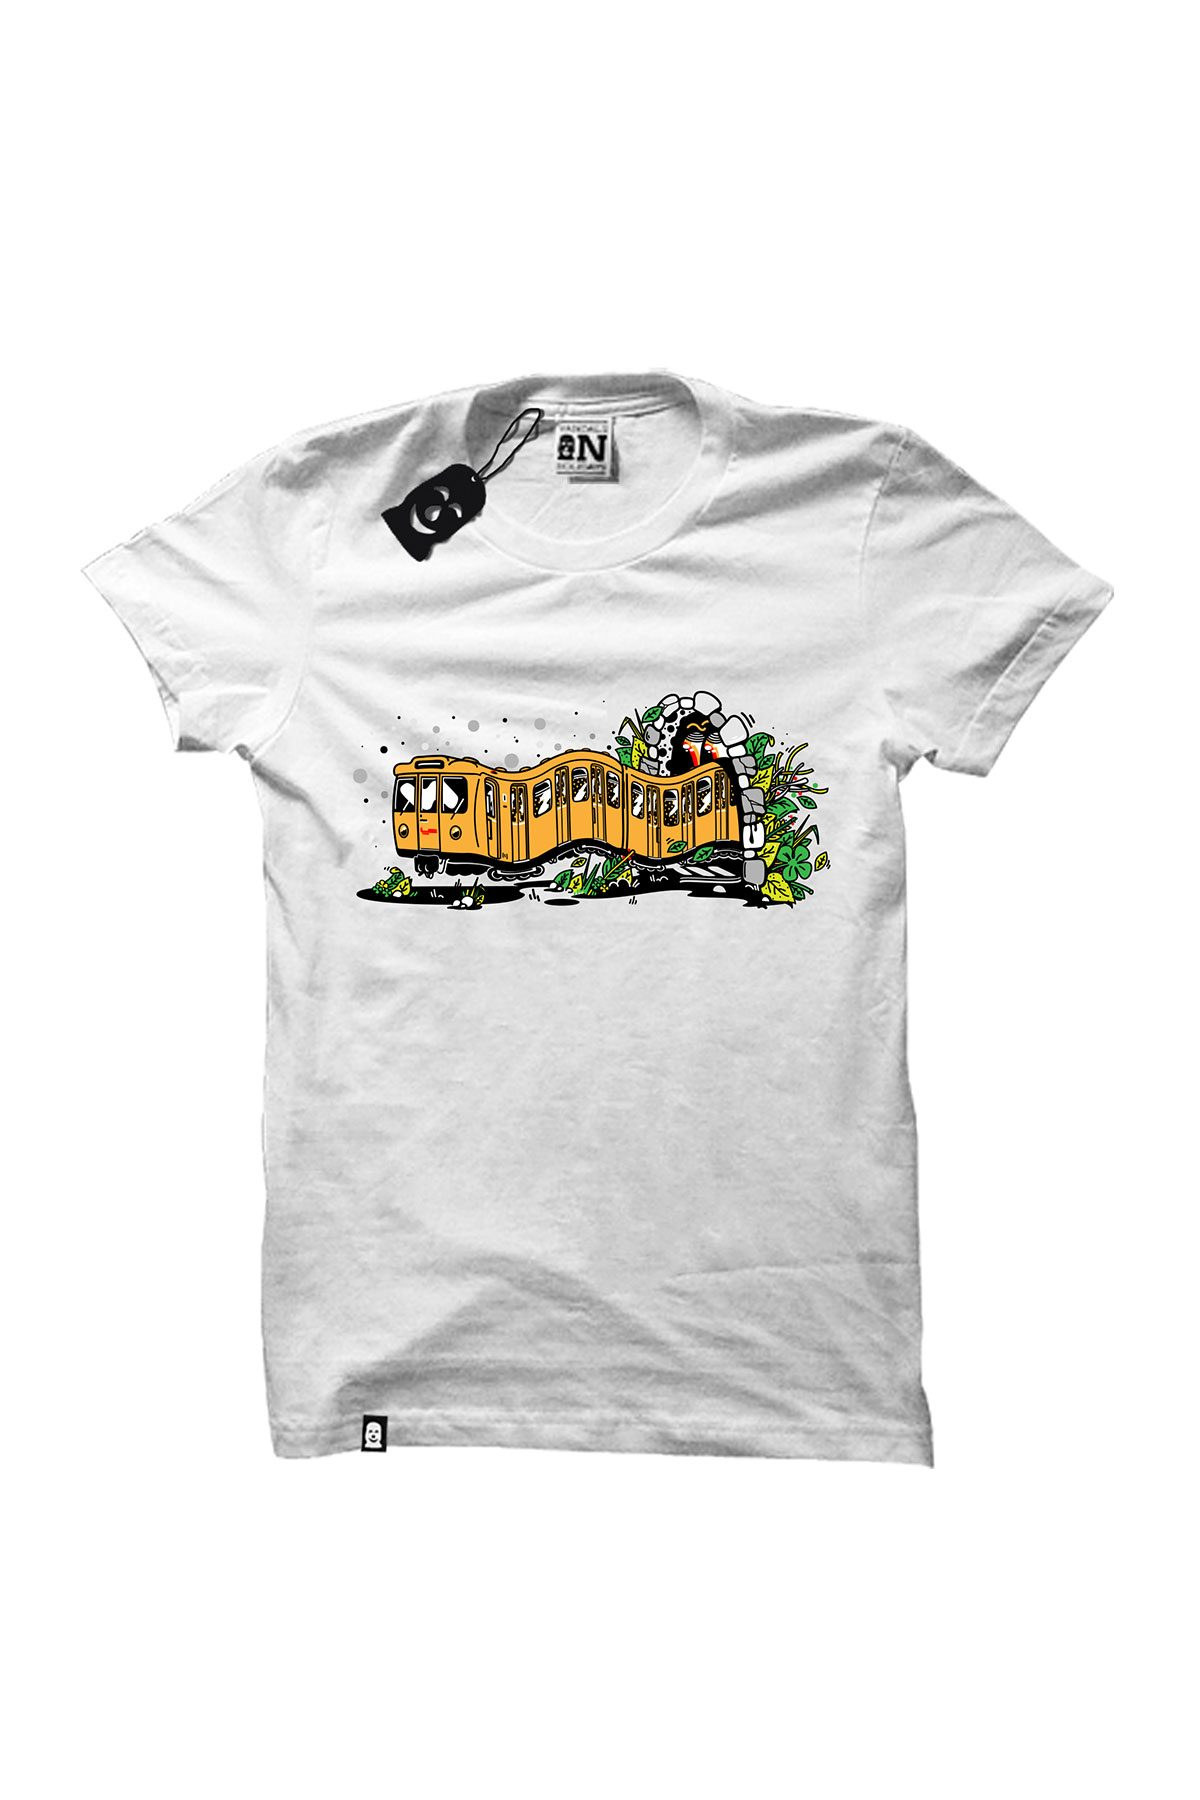 Vandals On Holidays BERLIN METRO T-Shirt